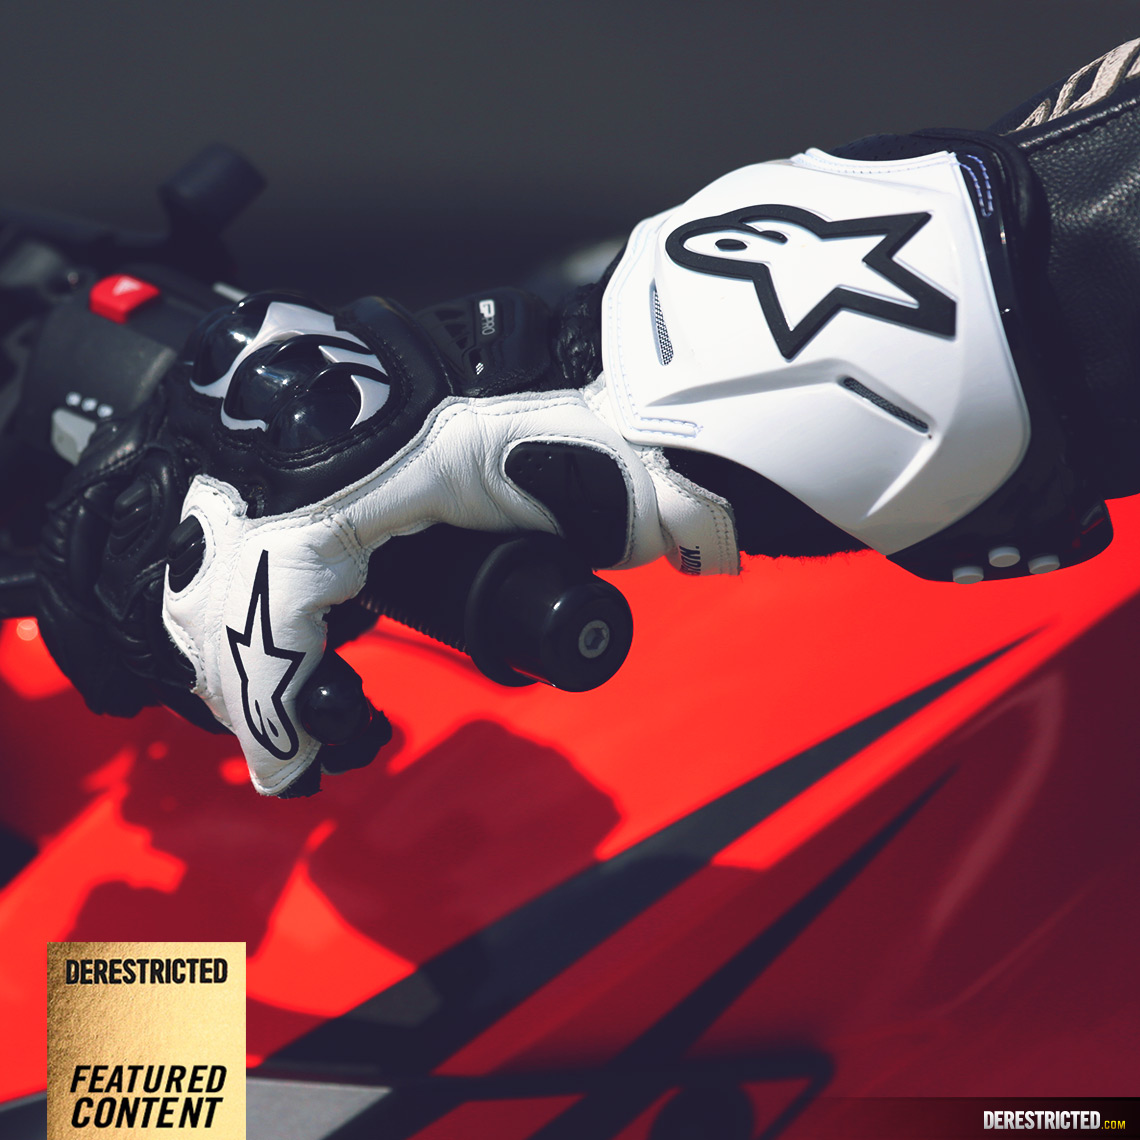 alpinestars gp pro leather glove review derestricted. Black Bedroom Furniture Sets. Home Design Ideas